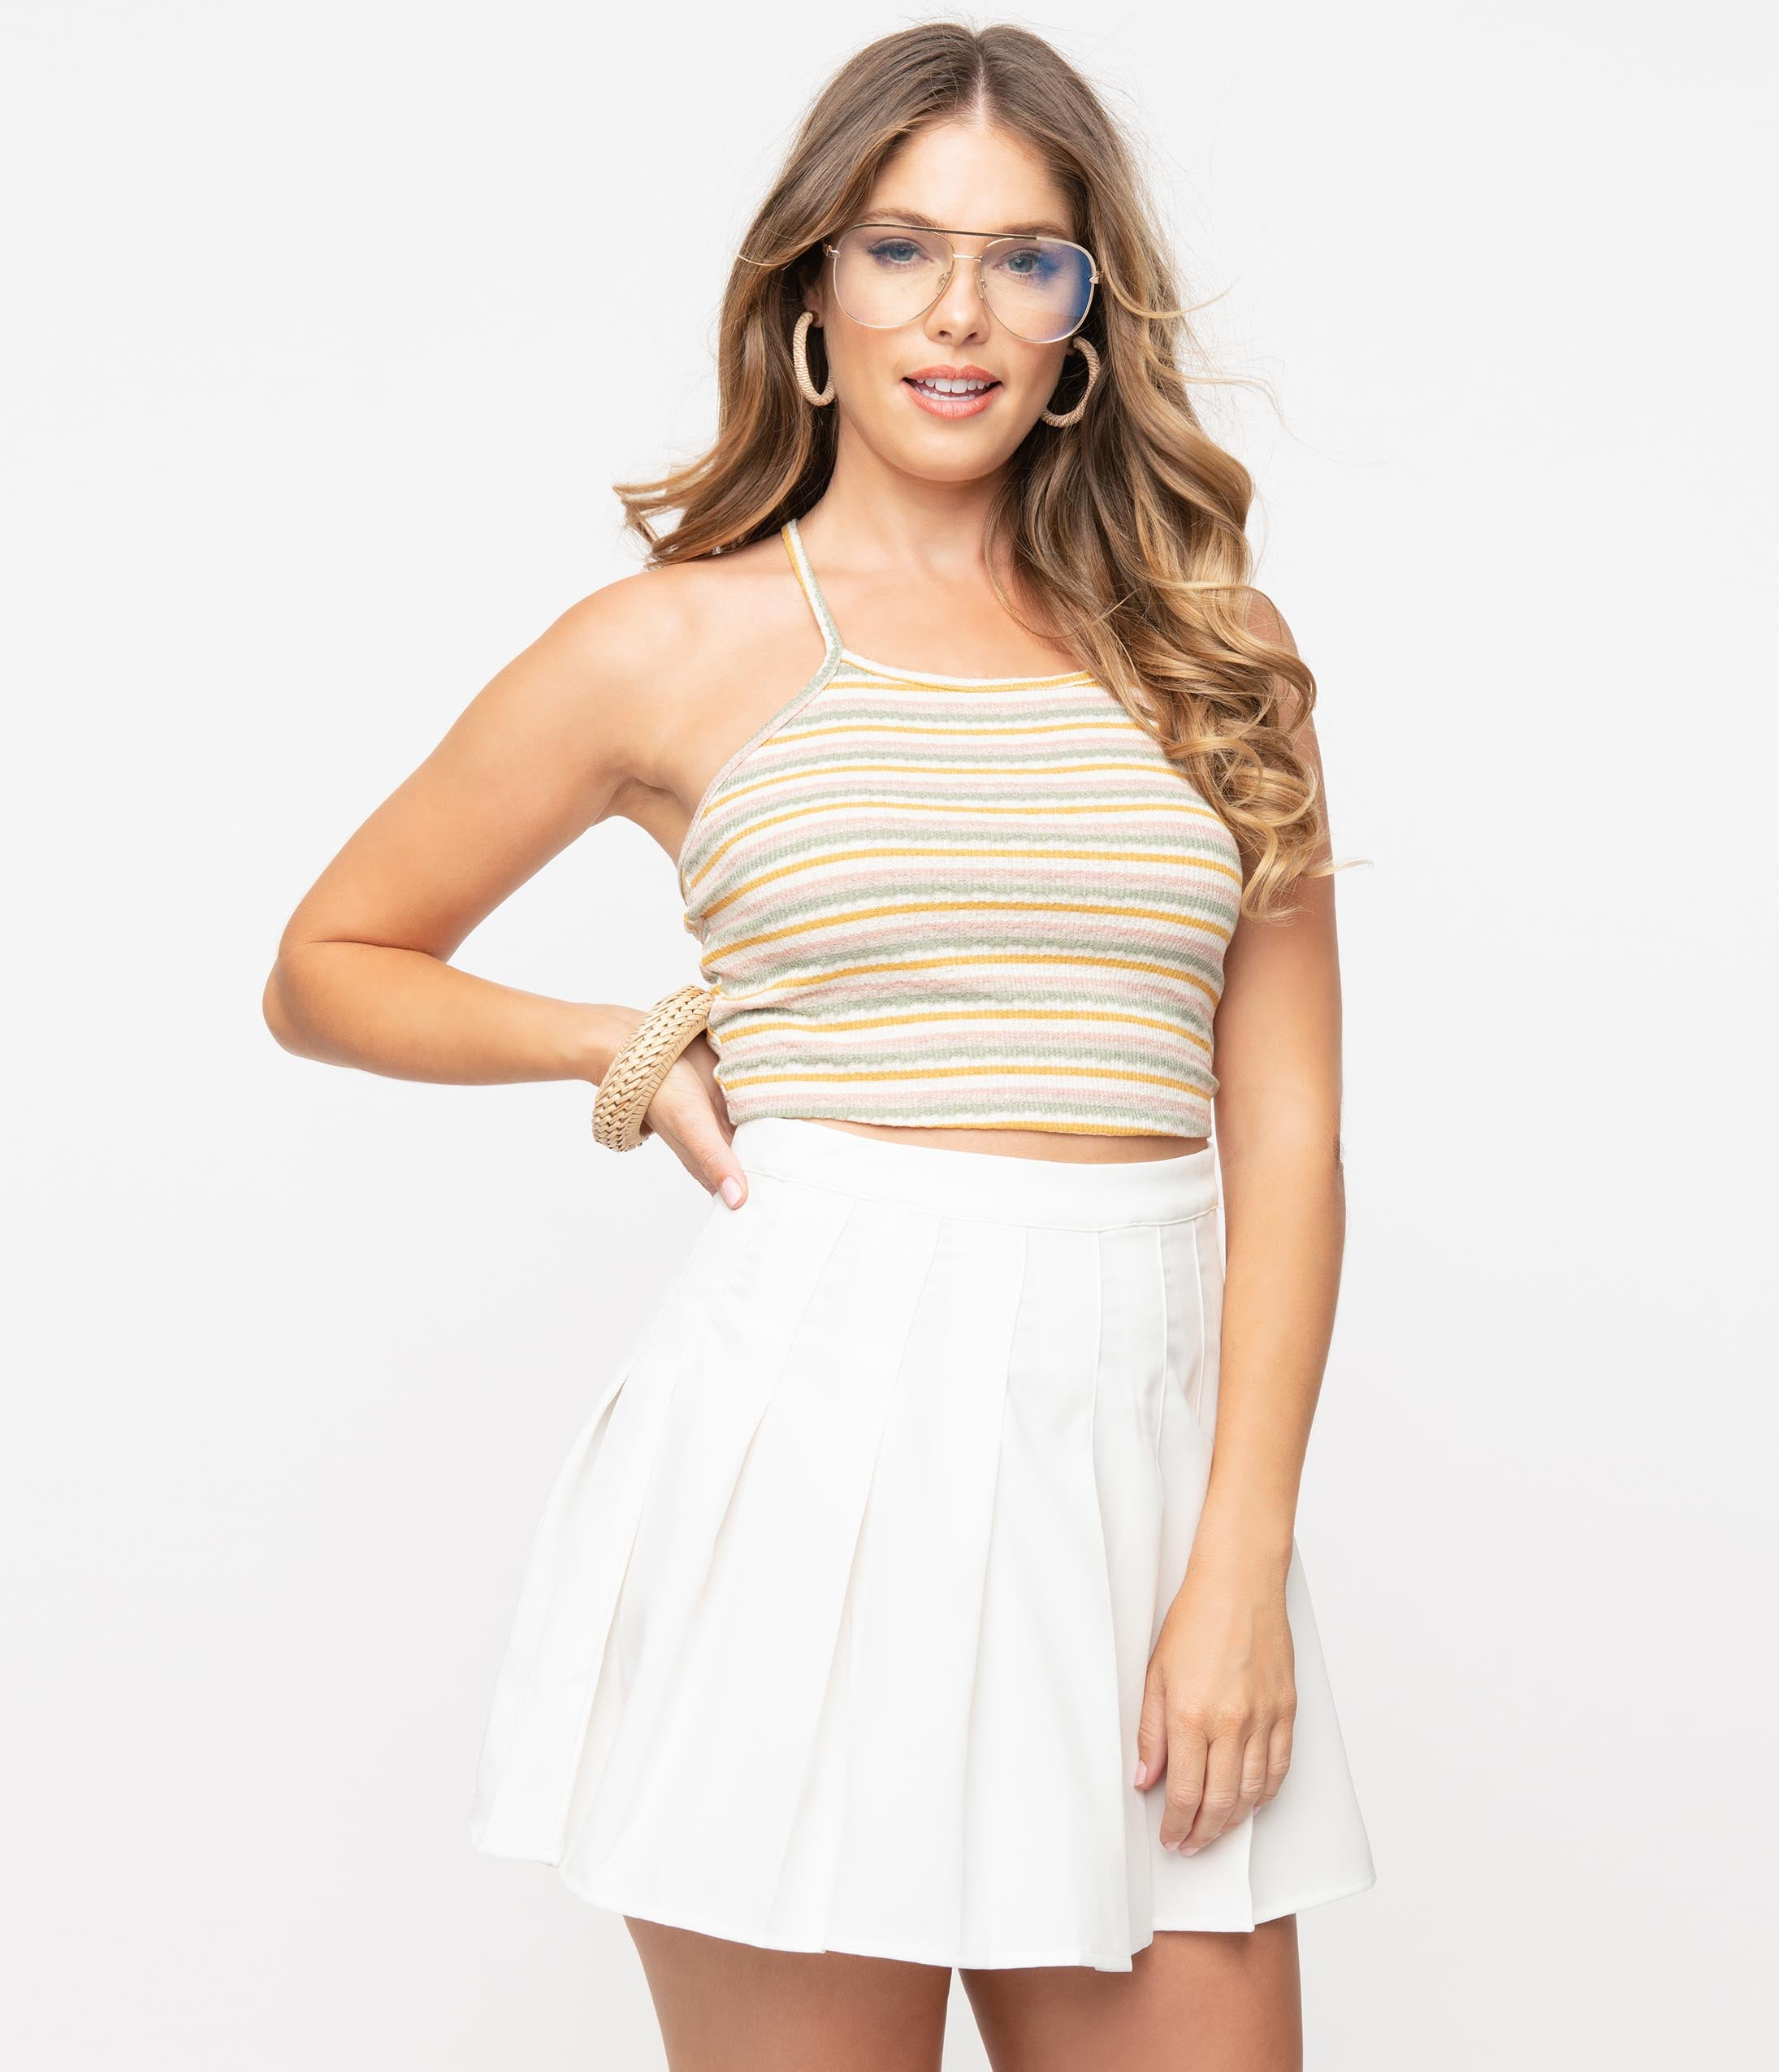 70s Fashion   What Did Women Wear in the 1970s? Cream  Multicolor Stripe Knit Crop Top $34.00 AT vintagedancer.com